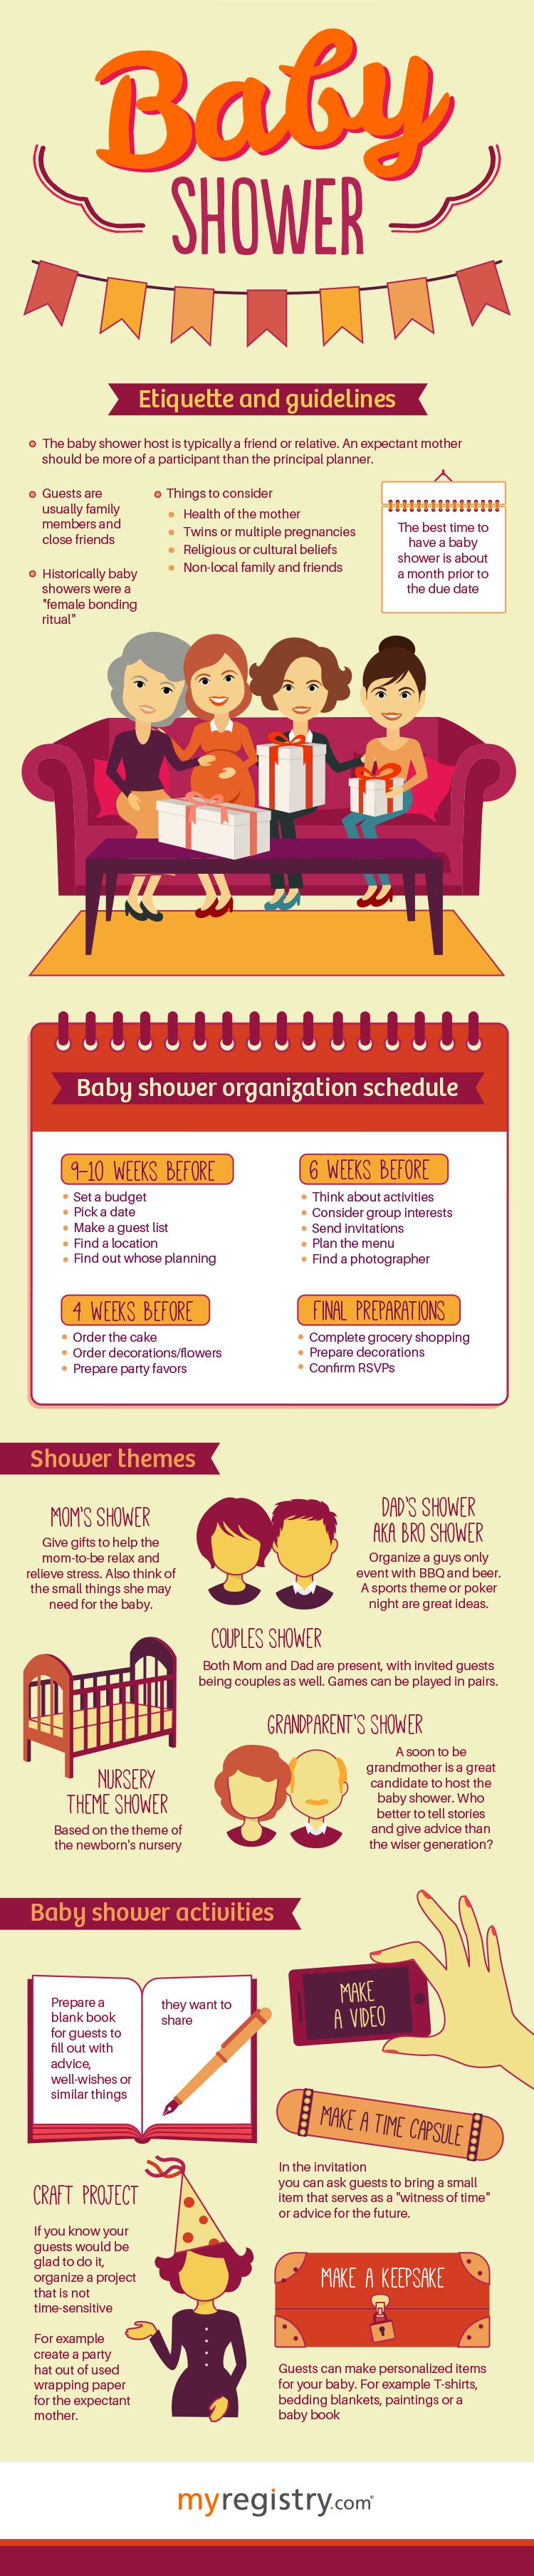 Baby Shower Etiquette and Guidelines  MyRegistry Blog